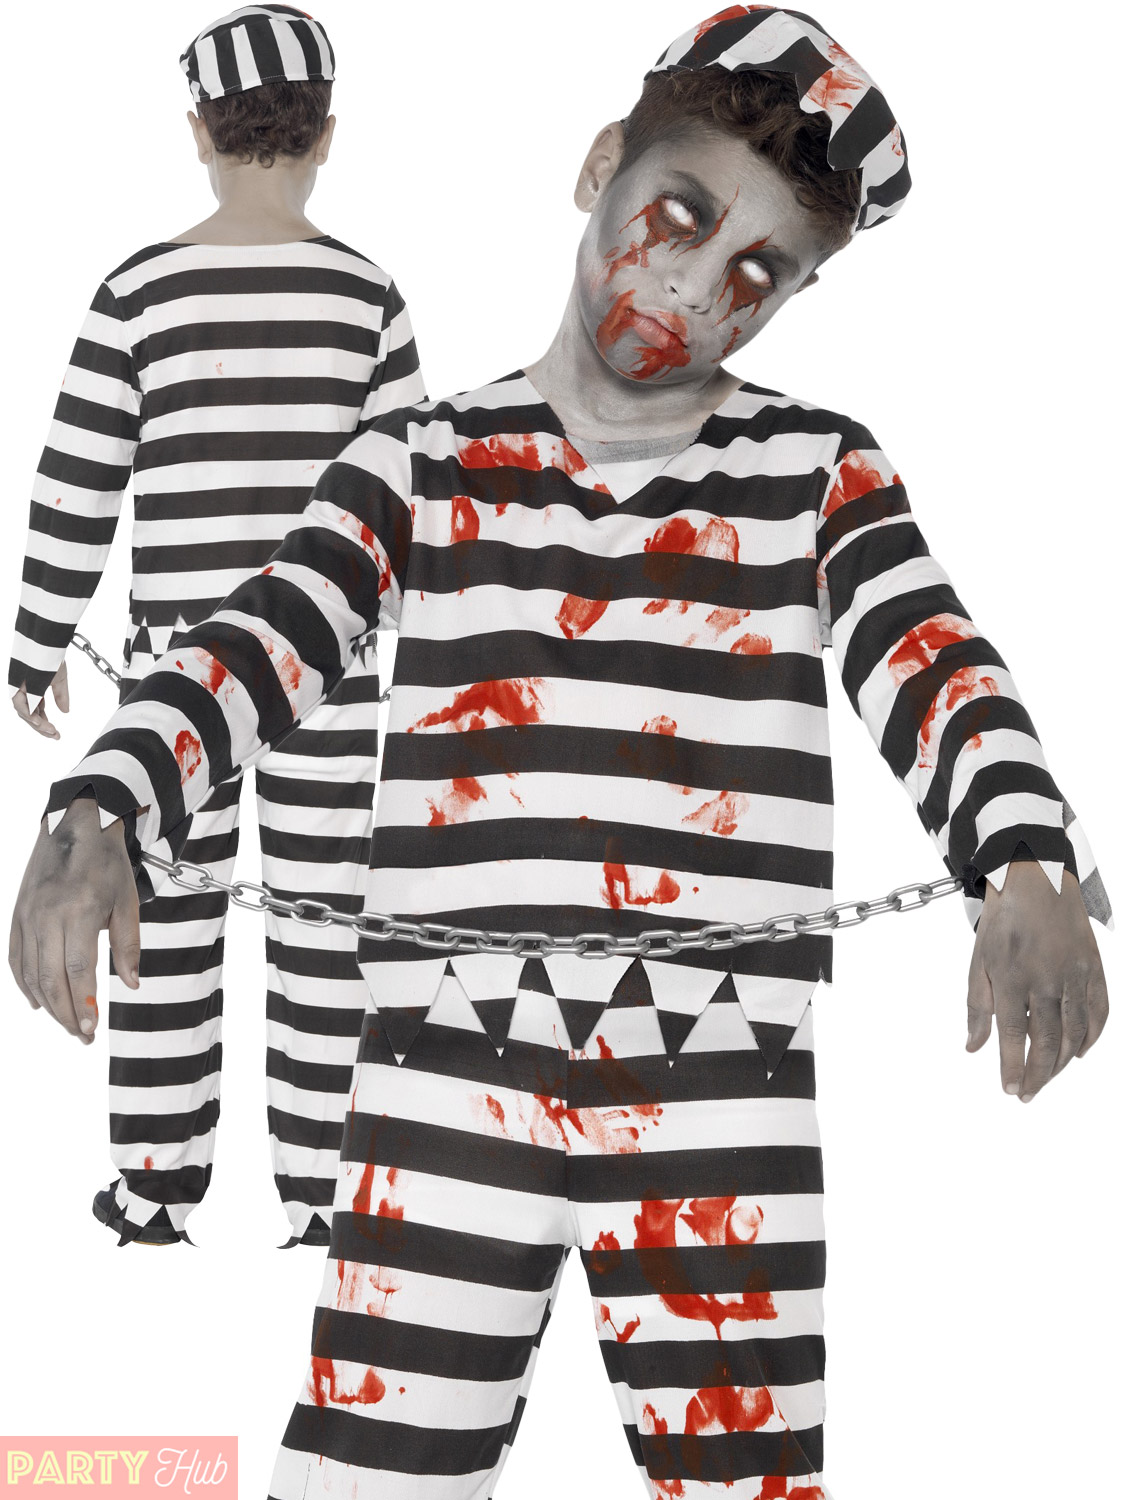 Halloween Makeup For Kids Boy.Details About Boys Zombie Convict Costume Prisoner Halloween Fancy Dress Kids Haloween Childs